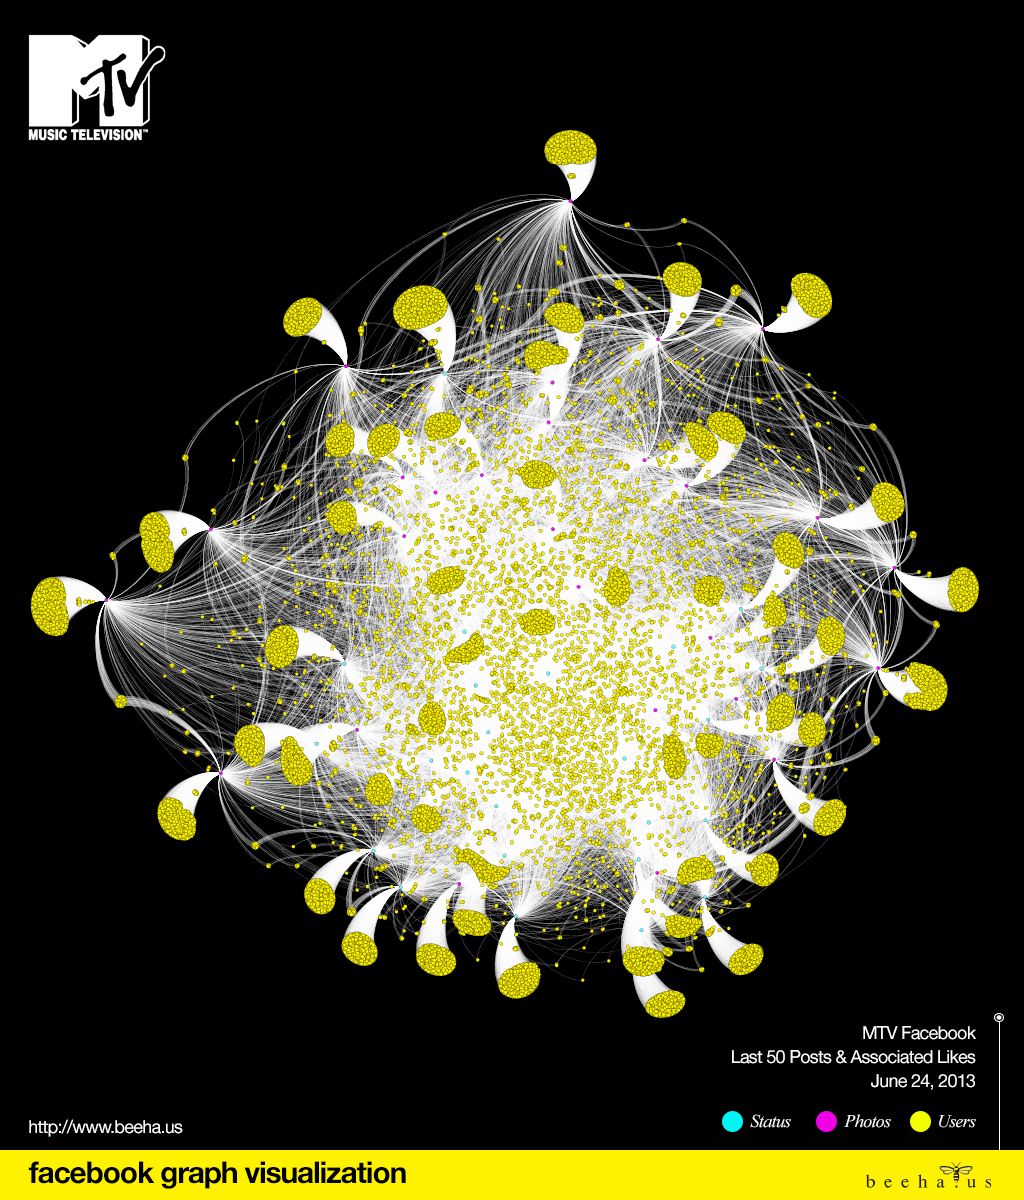 MTV Facebook Graph Visualization